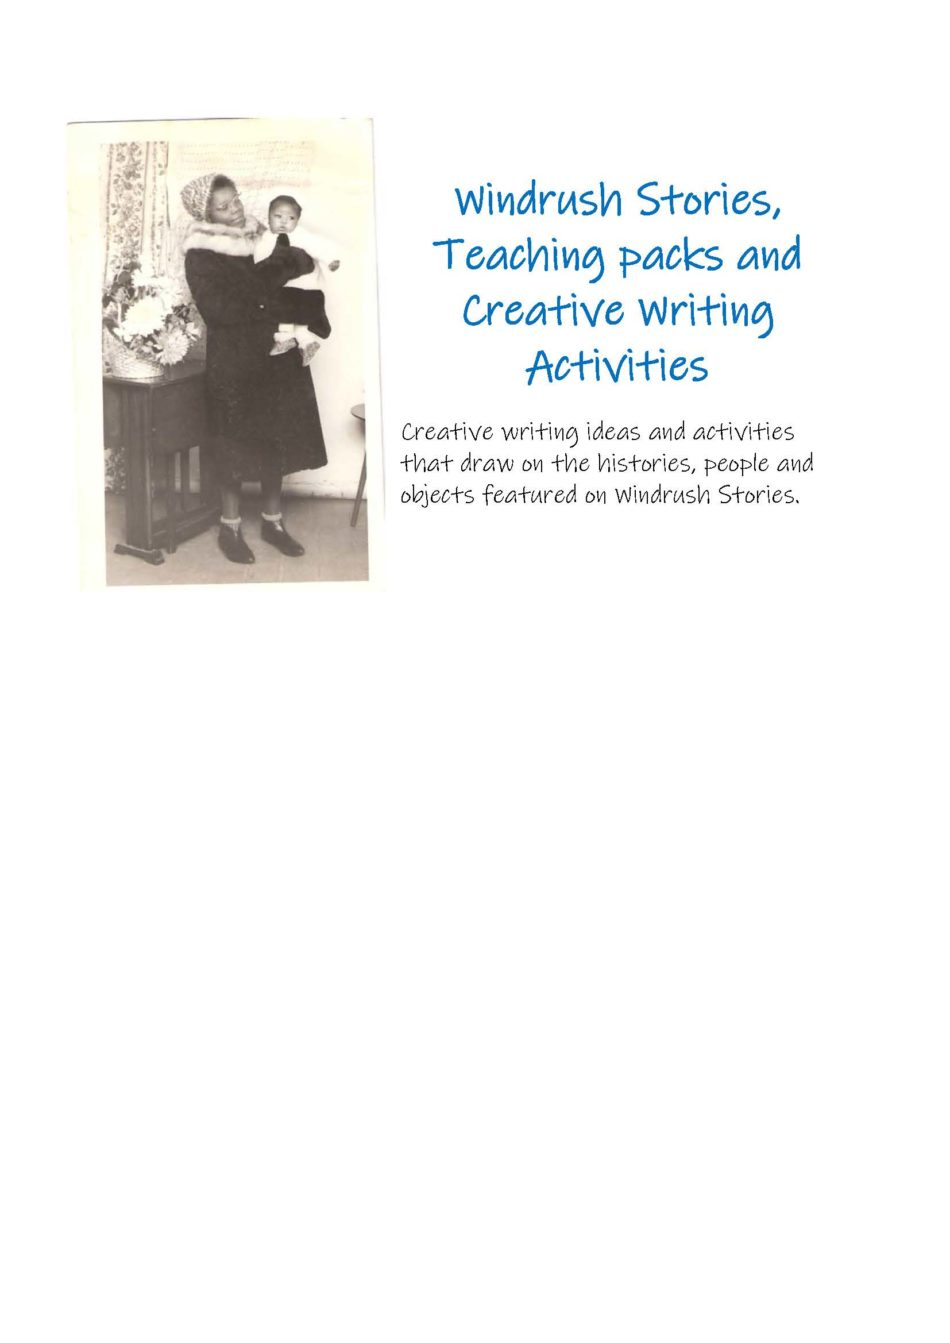 creative writing ideas and activities